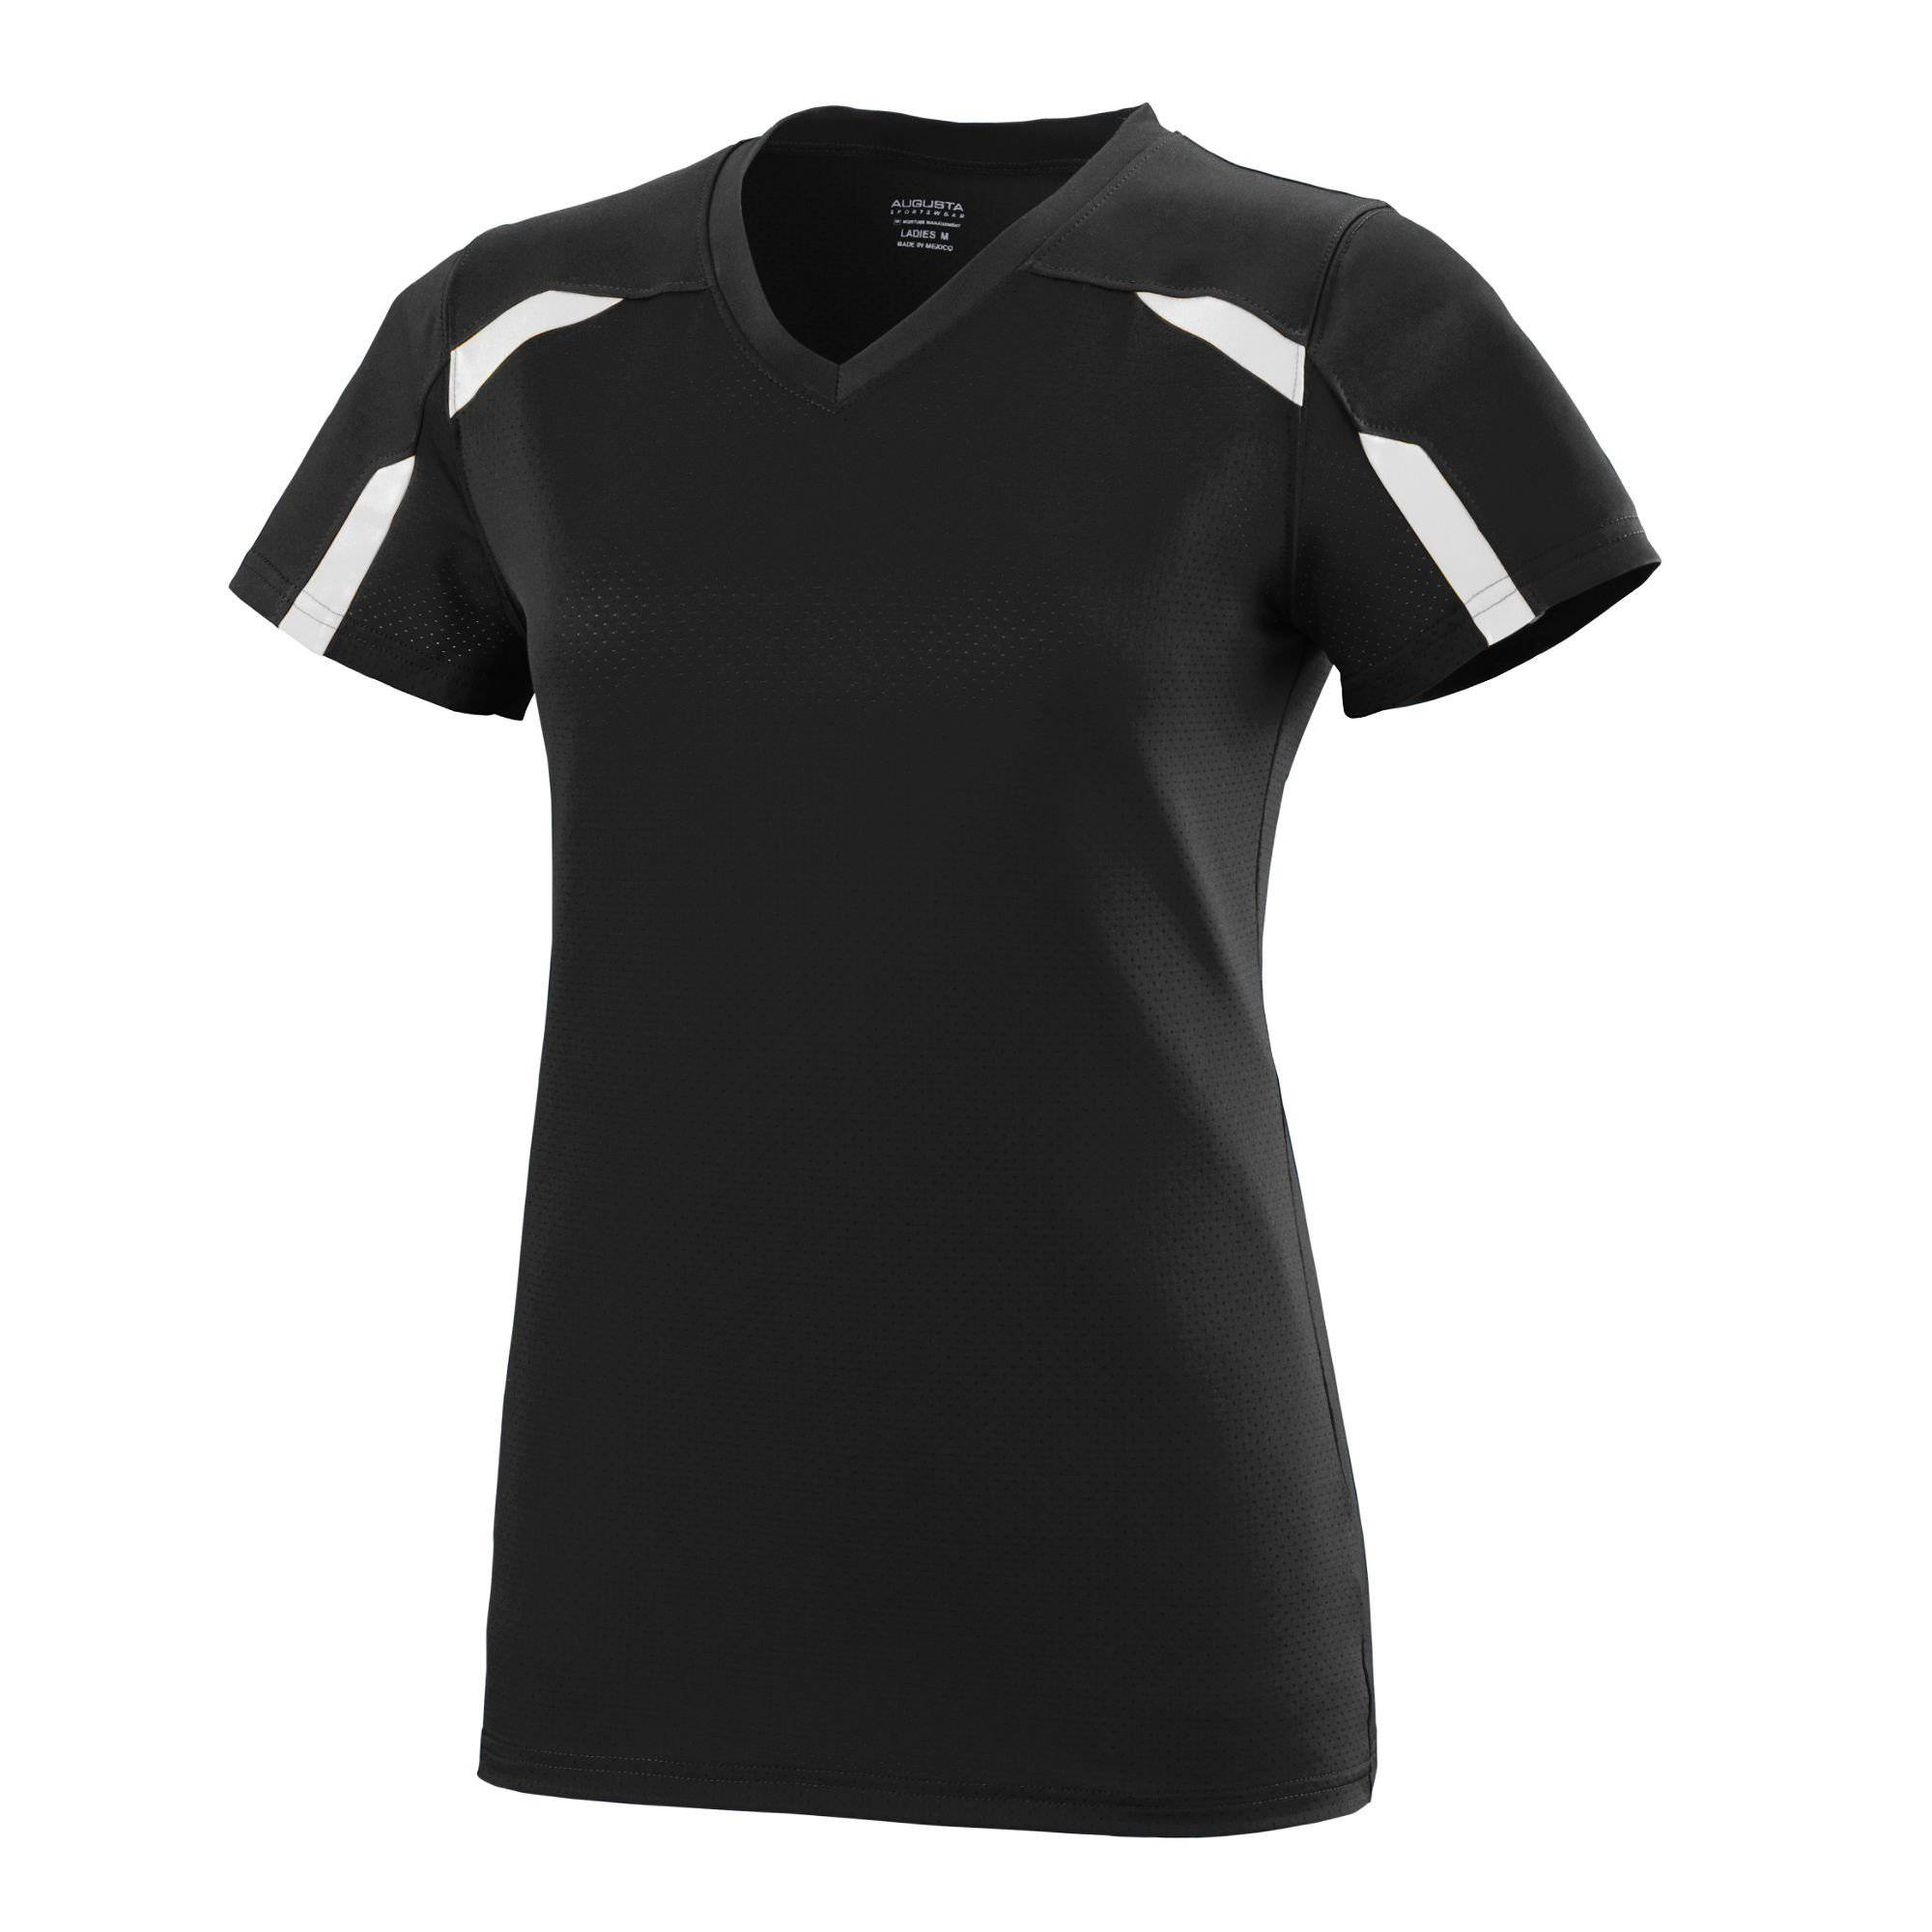 Augusta 1003 Girls Avail Jersey - Black White - HIT A Double